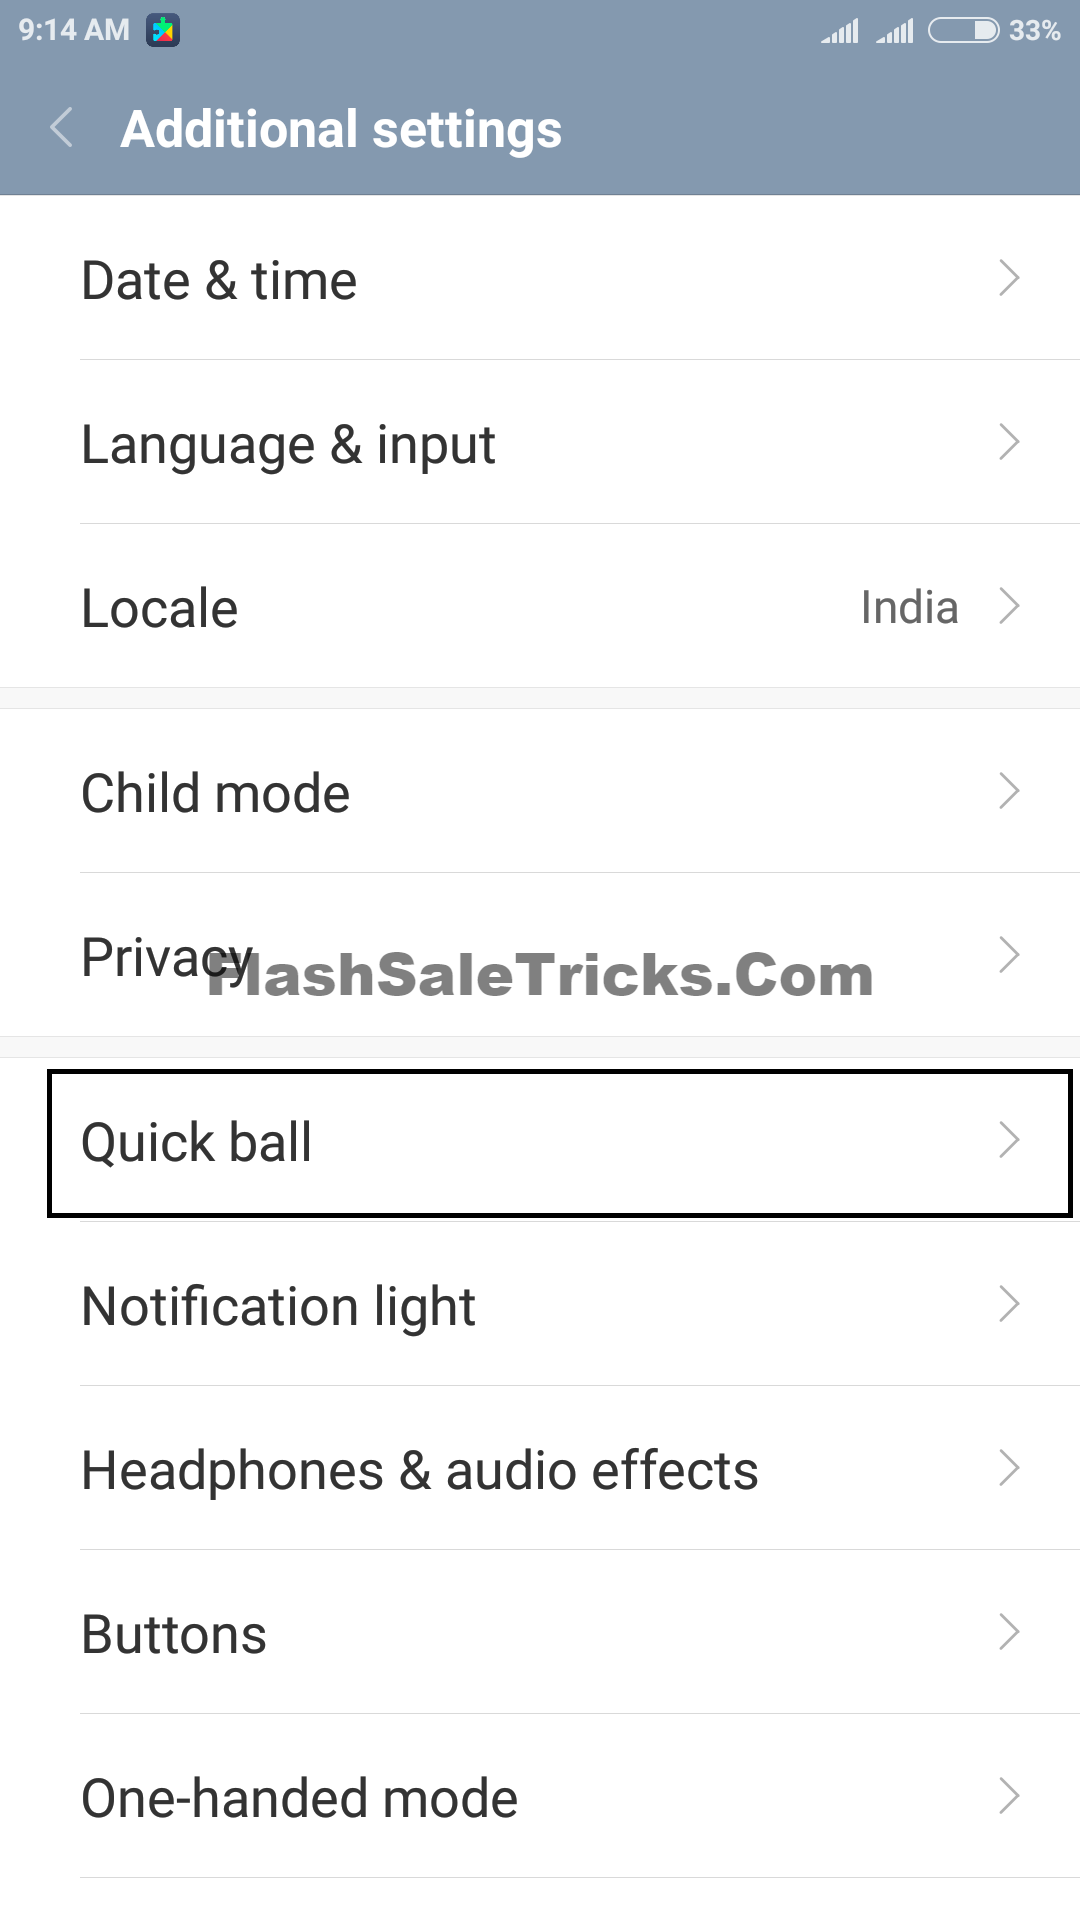 MI_Quick Ball_Additional_Settings